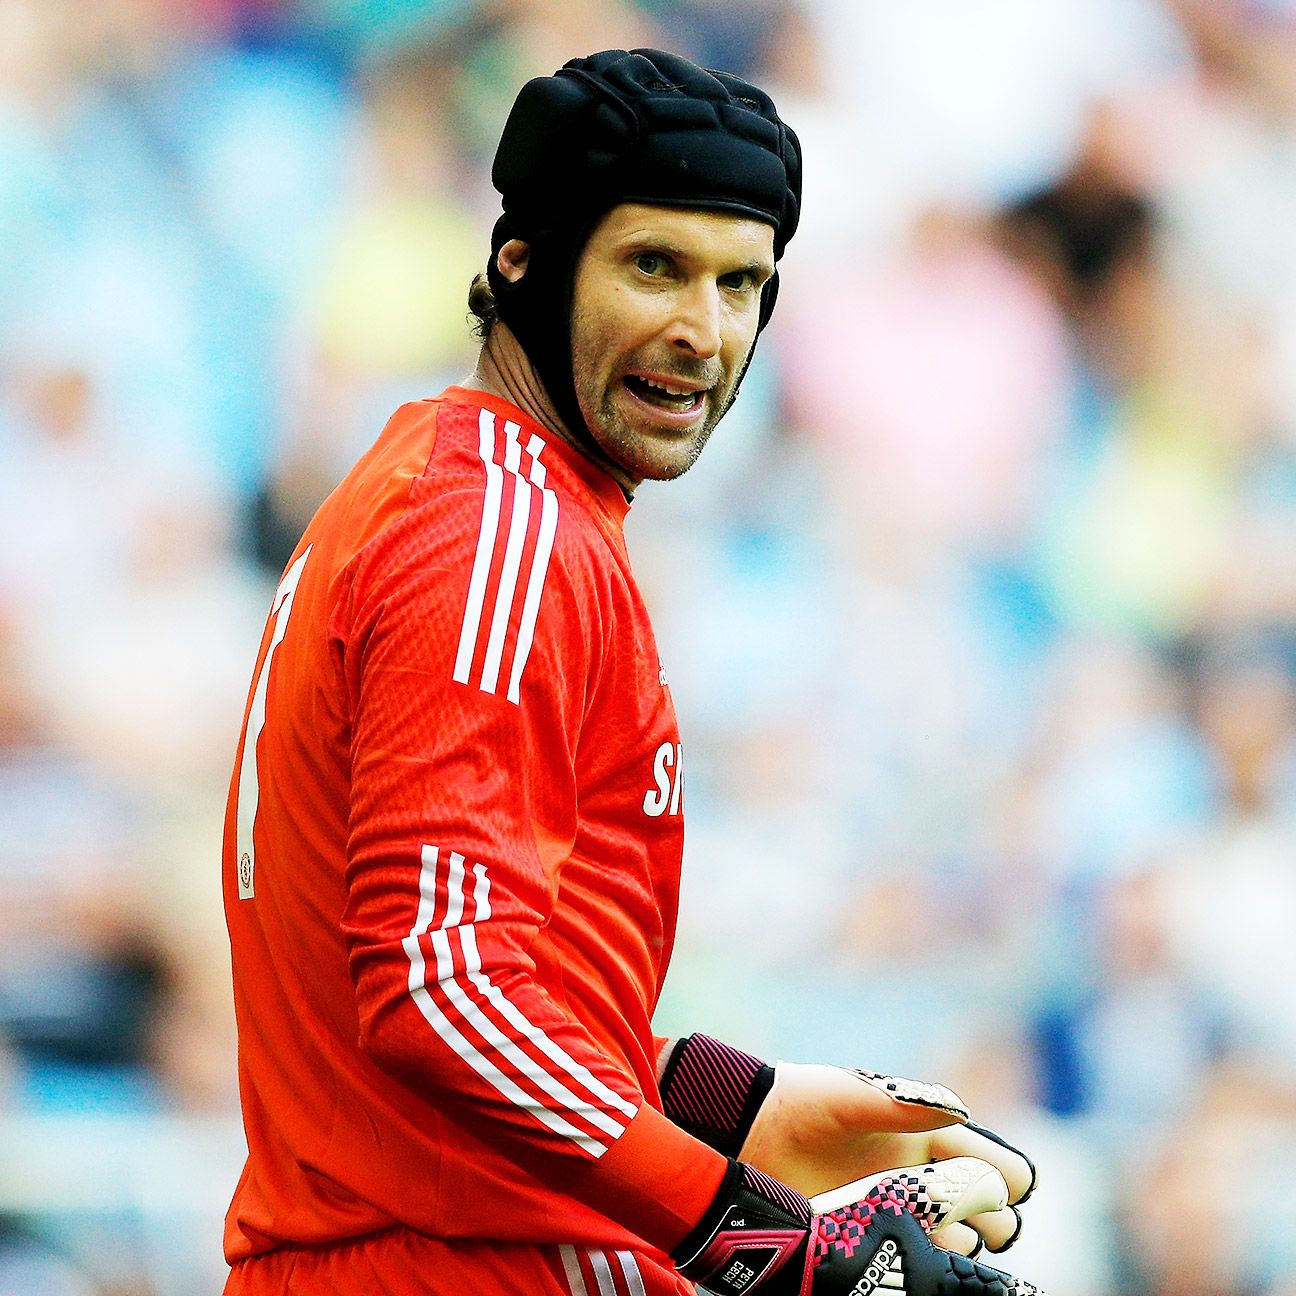 Cech would be a fine addition at Real Madrid but a move doesn't make sense... does it?